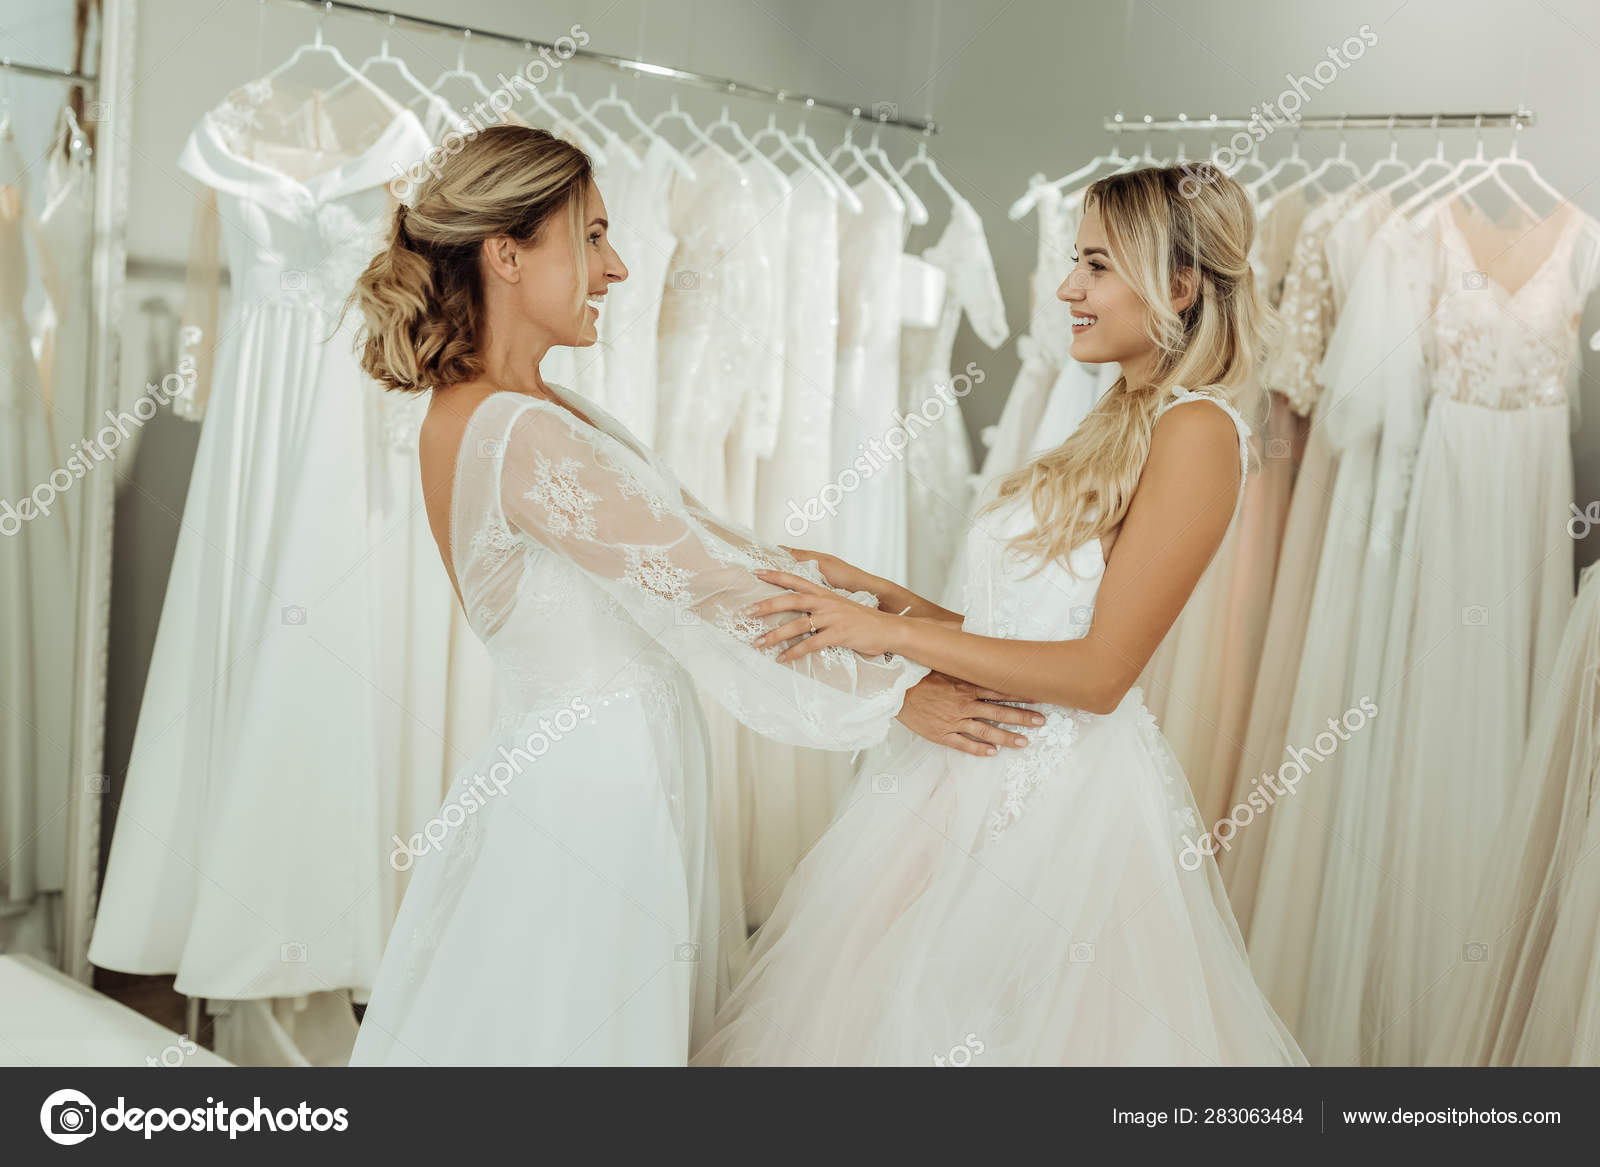 Two Friends Trying On Wedding Dresses Together Stock